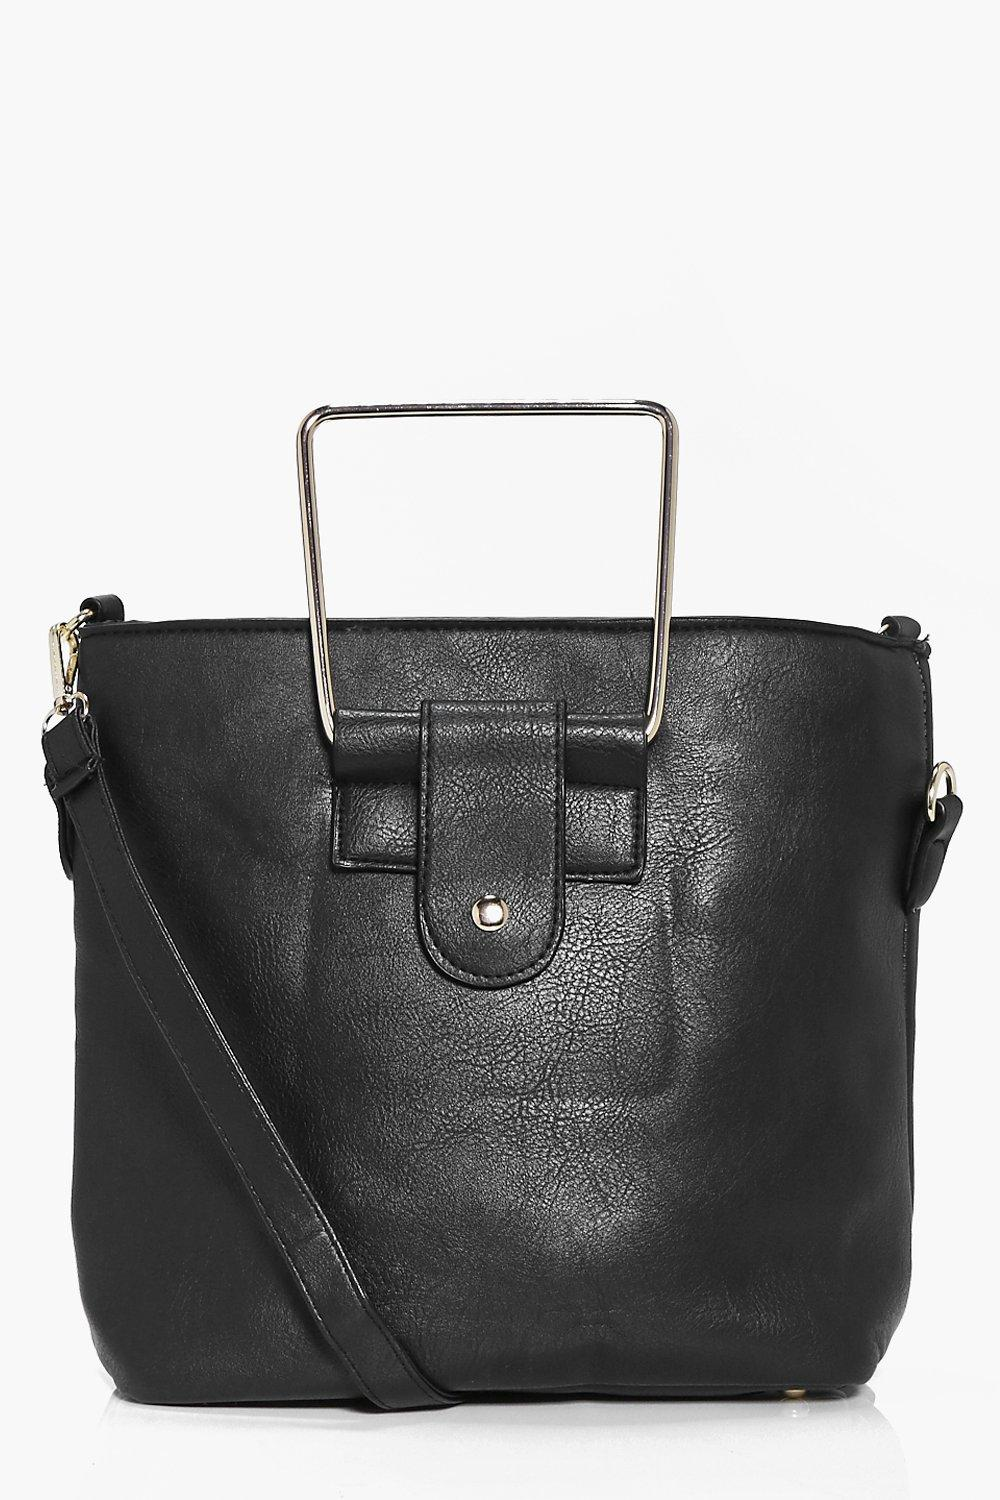 Metal Handle Structured Duffle Bag - black - Isobe